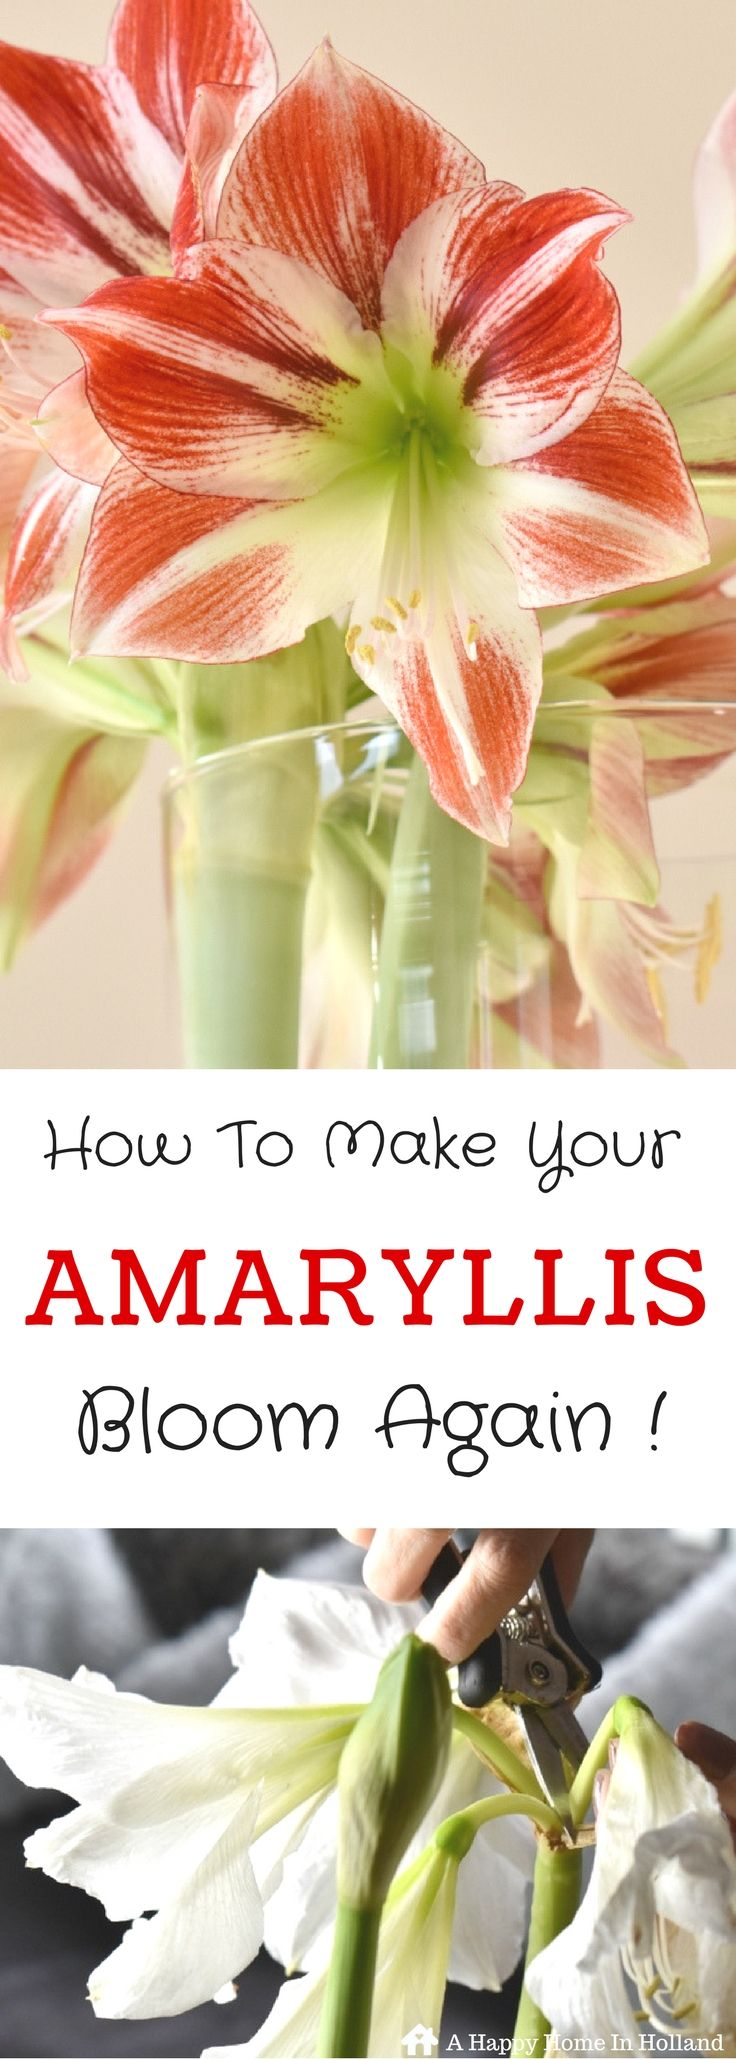 Amaryllis plant care instructions - How To Get An Amaryllis To Flower Again